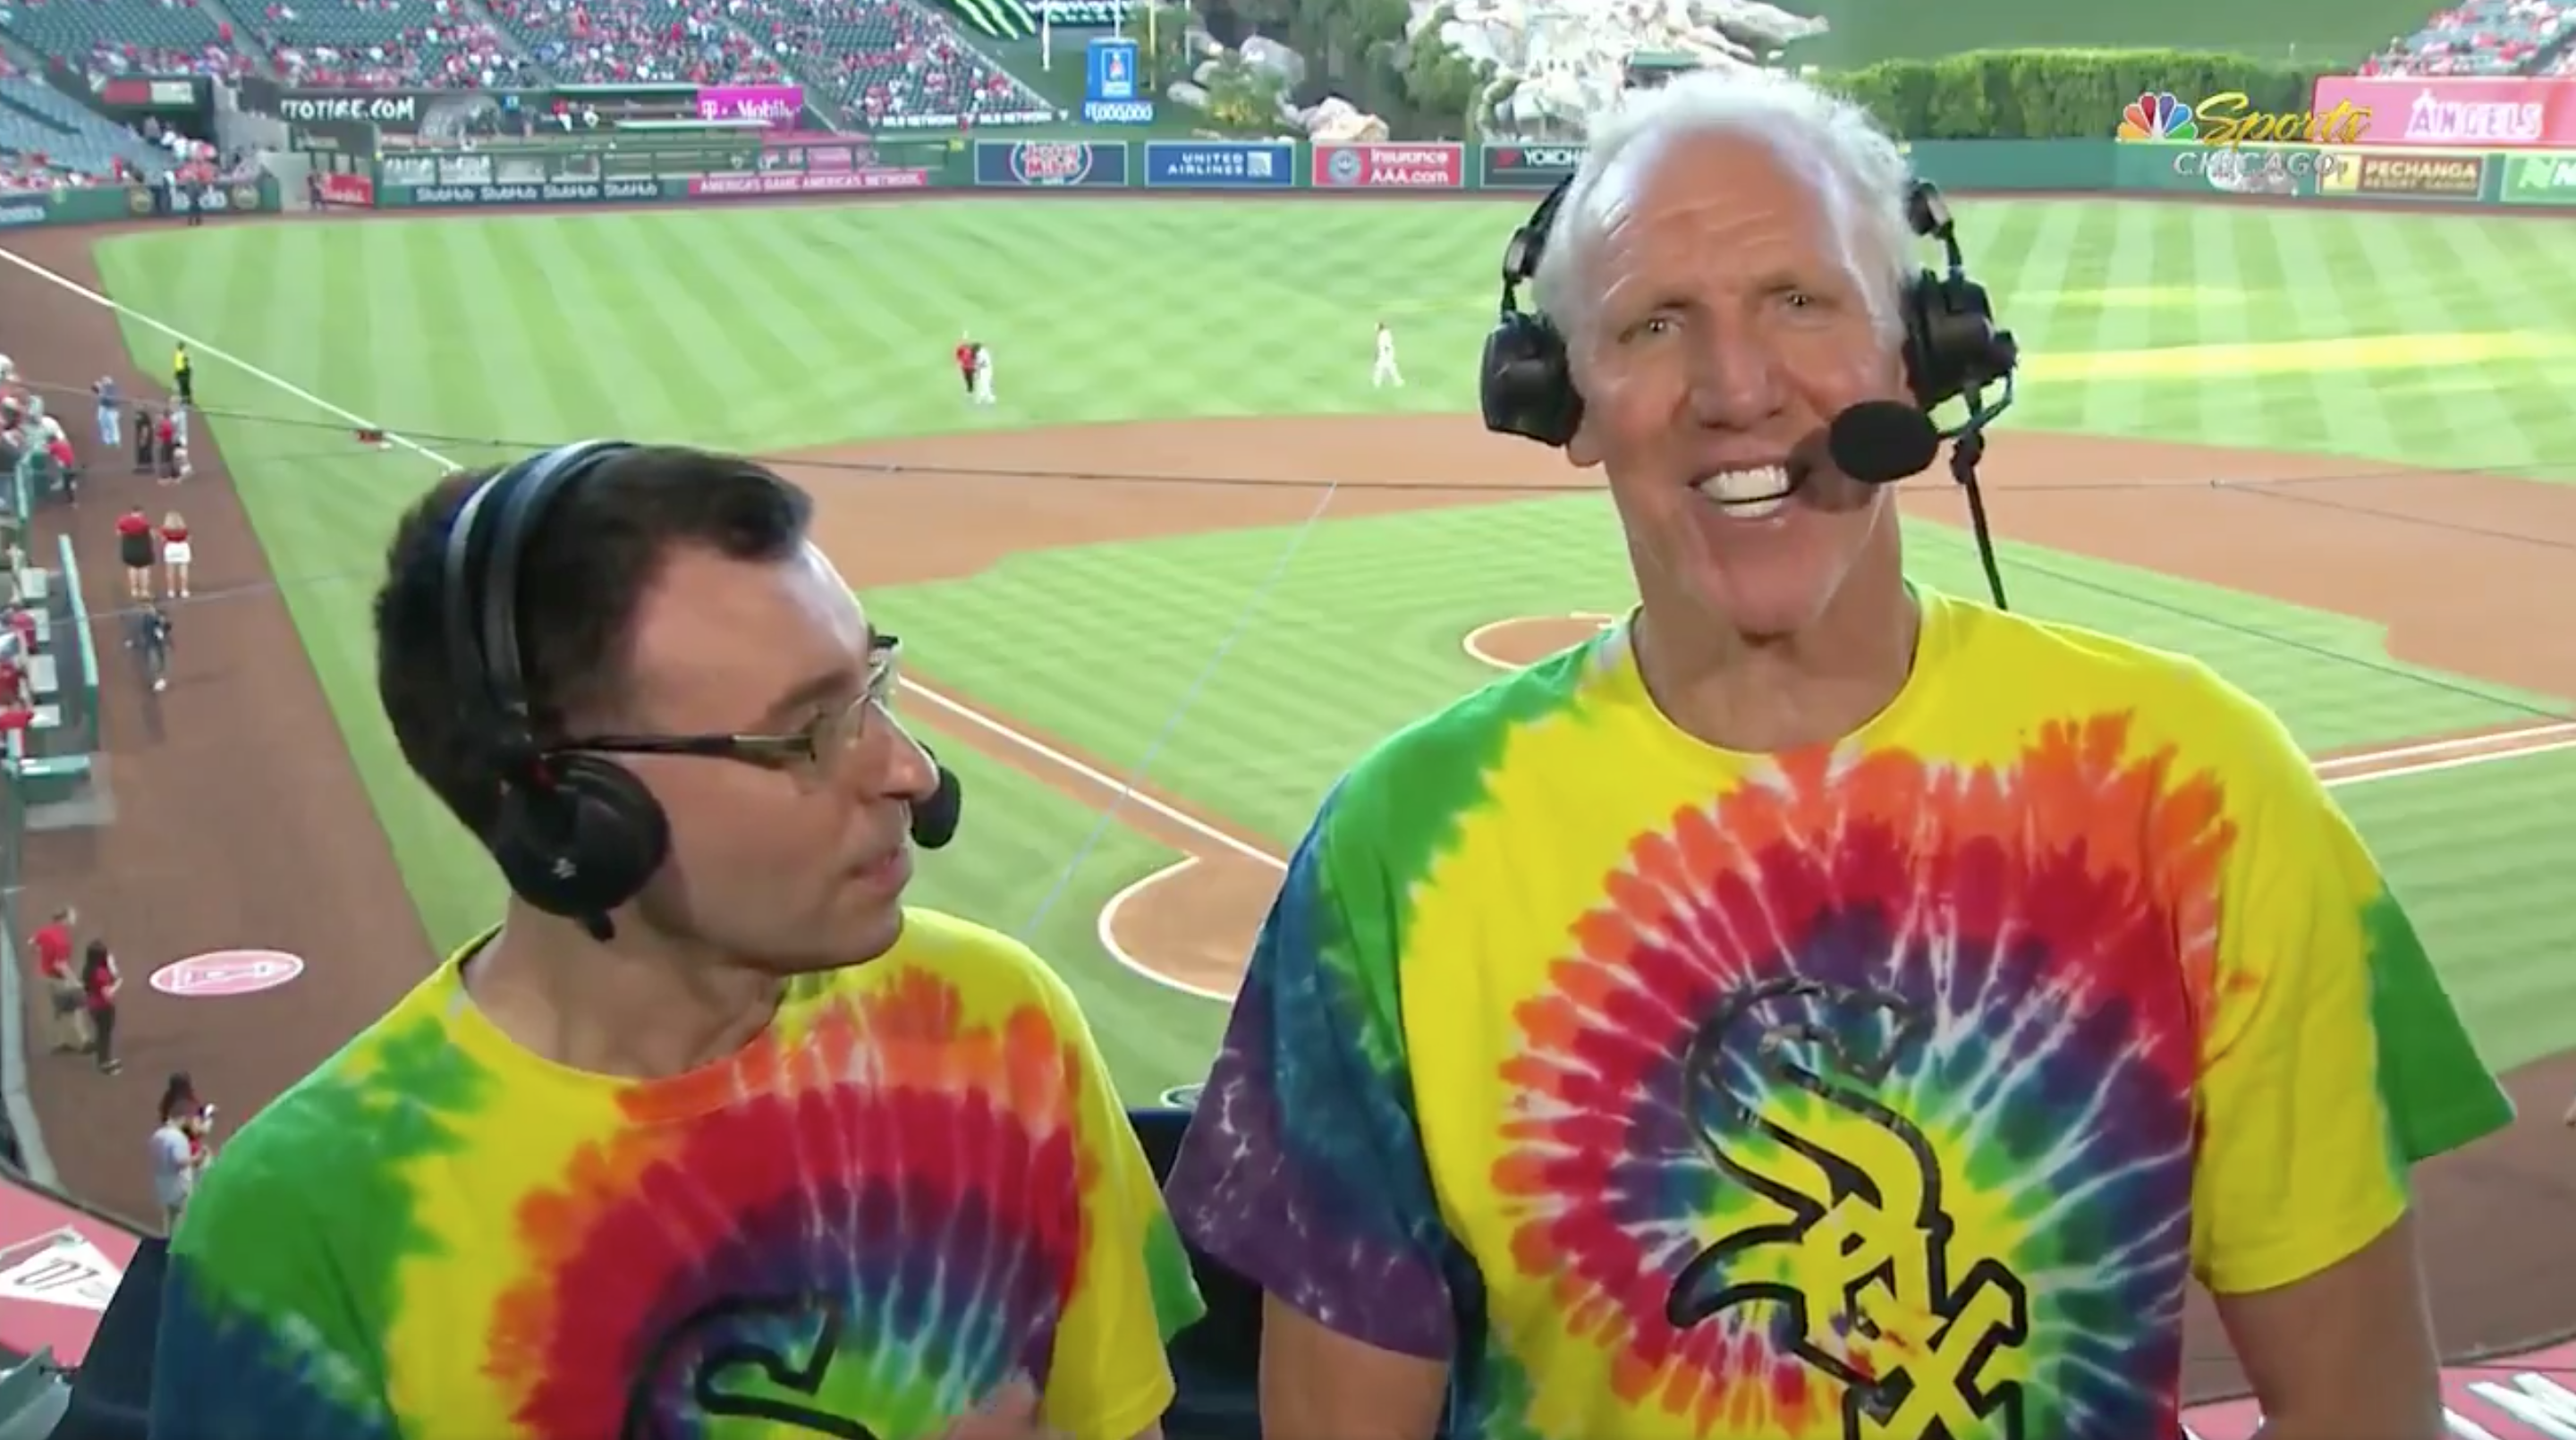 Bill Walton Takes Over White Sox Broadcast: 'I've Been Dead for Quite a Few Years'